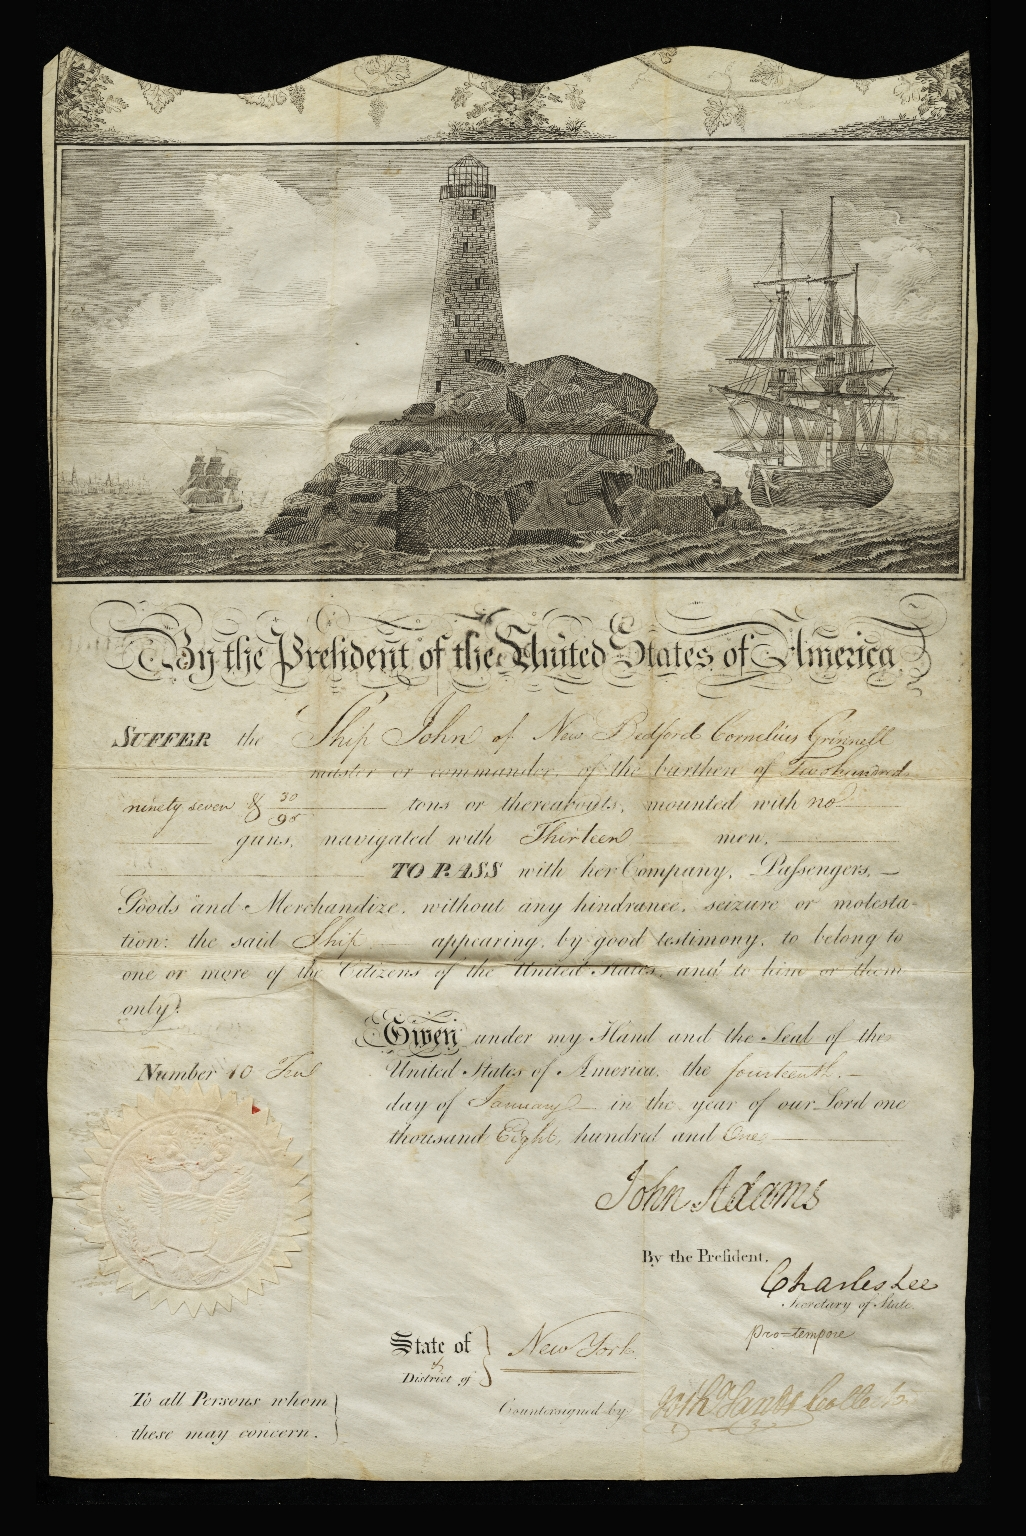 [John Adams signed shipping document]